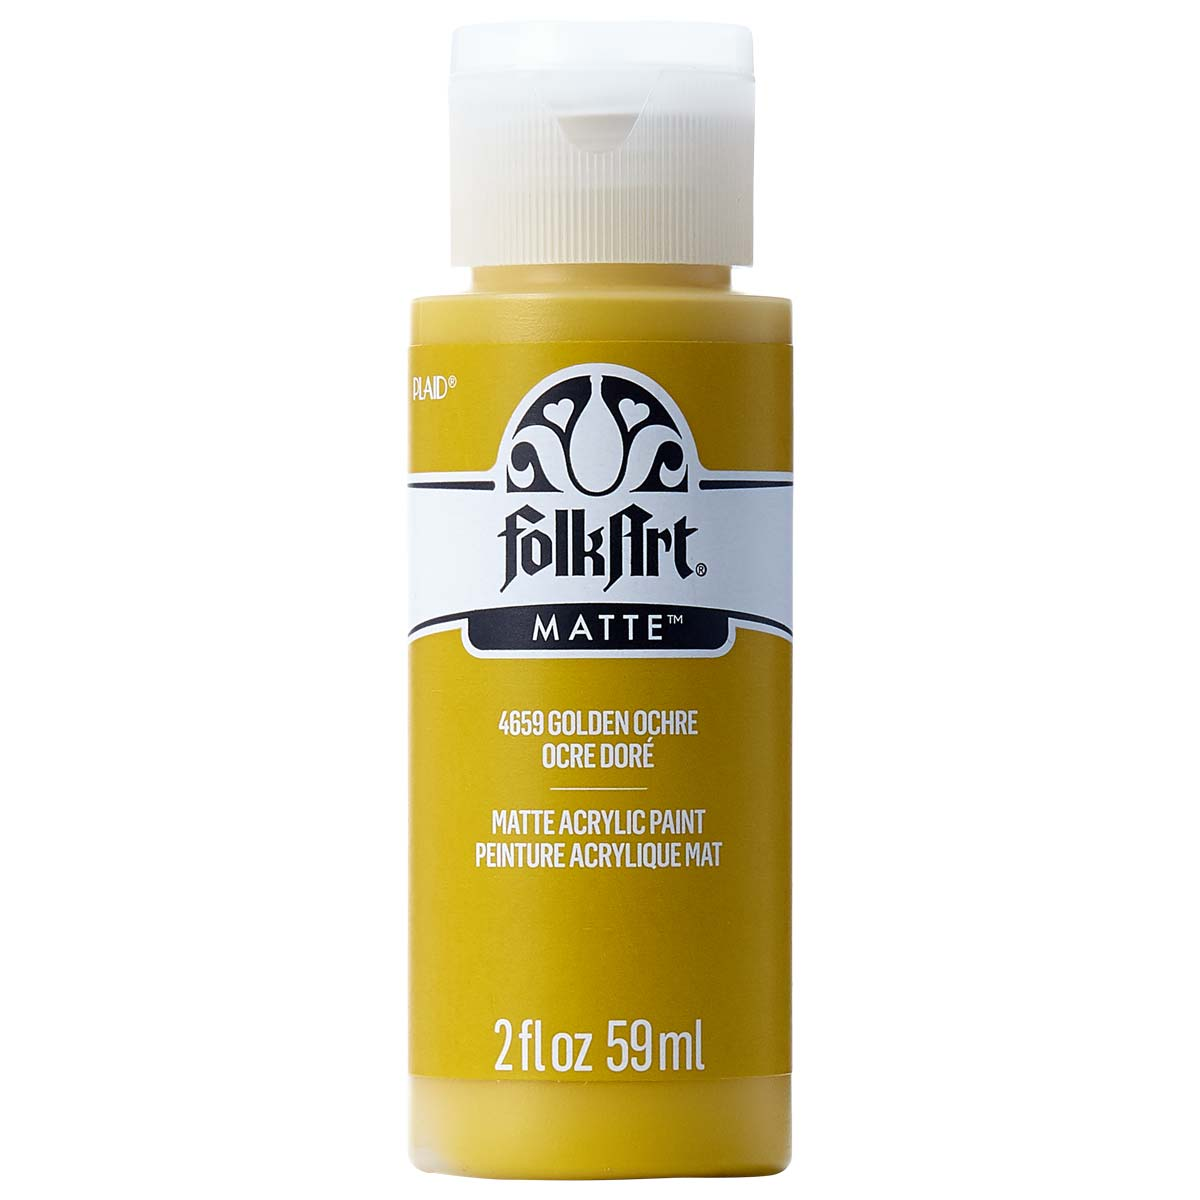 FolkArt ® Acrylic Colors - Golden Ochre, 2 oz. - 4659